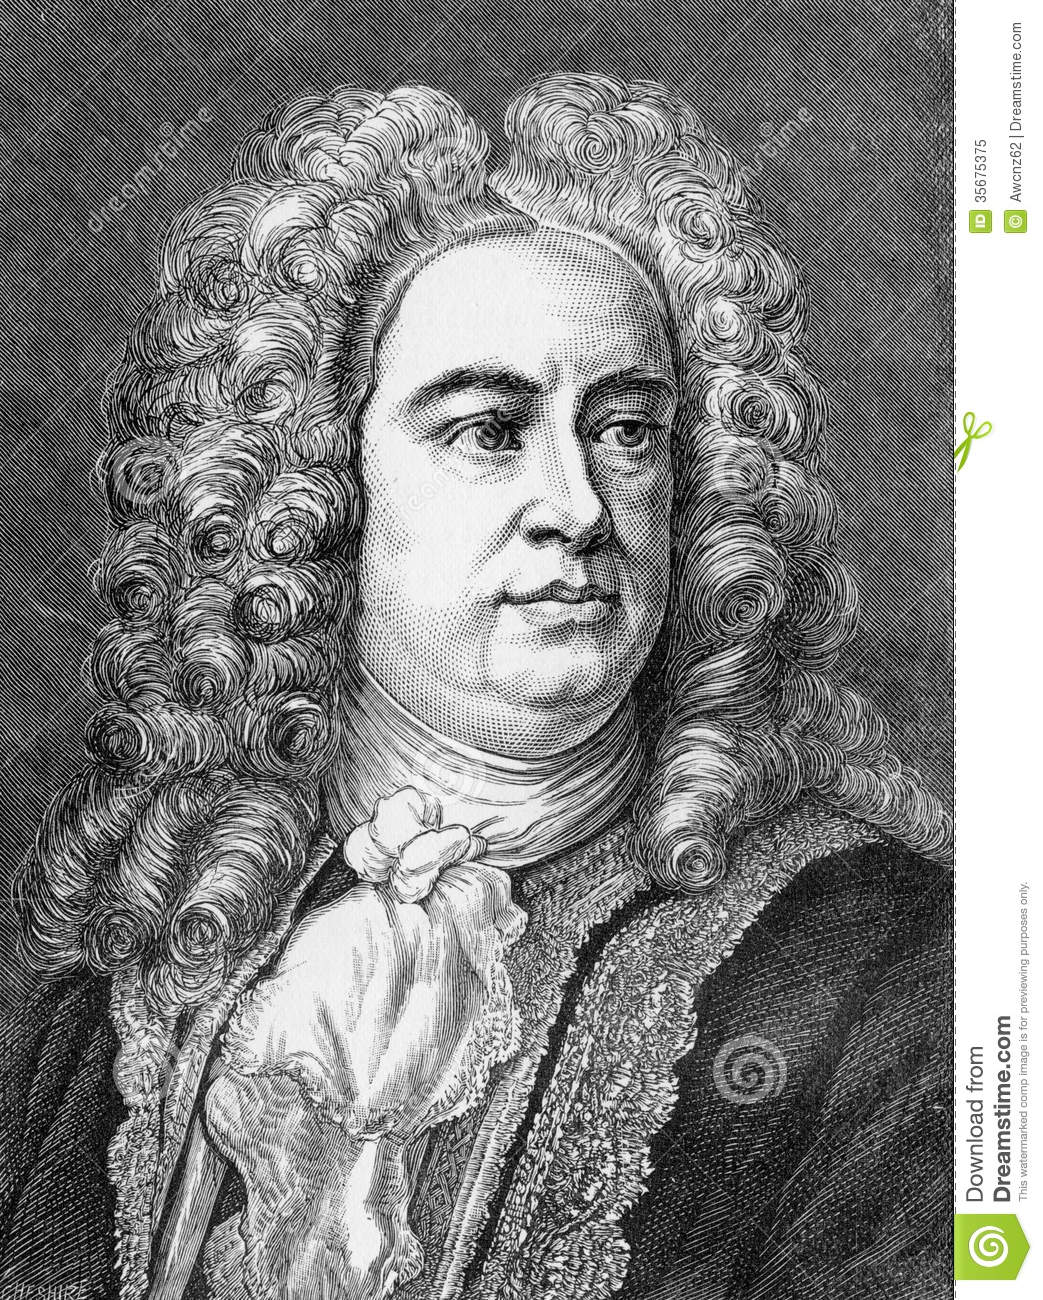 george f handel essay George frideric handel (1685-1759) one of the greatest composers of the late baroque period (1700-1750) and, during his lifetime, perhaps the most internationally.